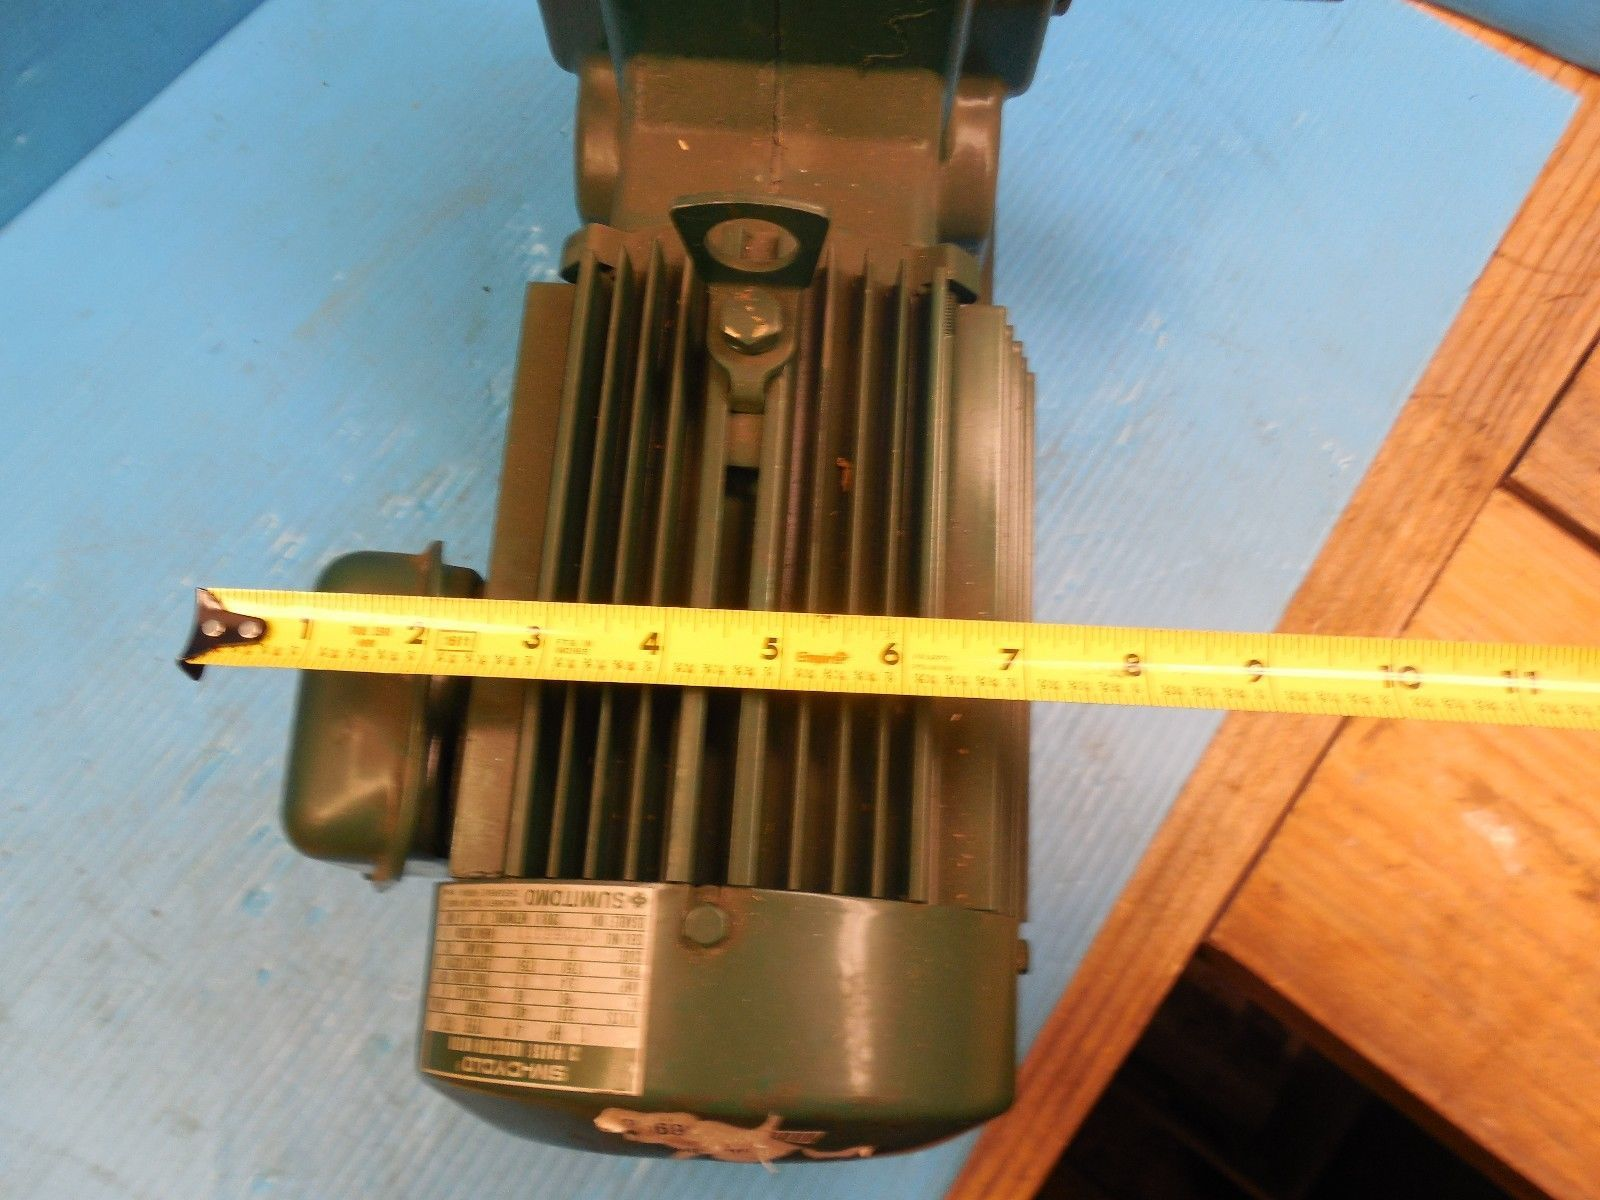 SUMITOMO RMH1-50RY AC GEAR BOX & MOTOR CLASS I MOTOR HP 1 RATIO 80 RPM 21.9